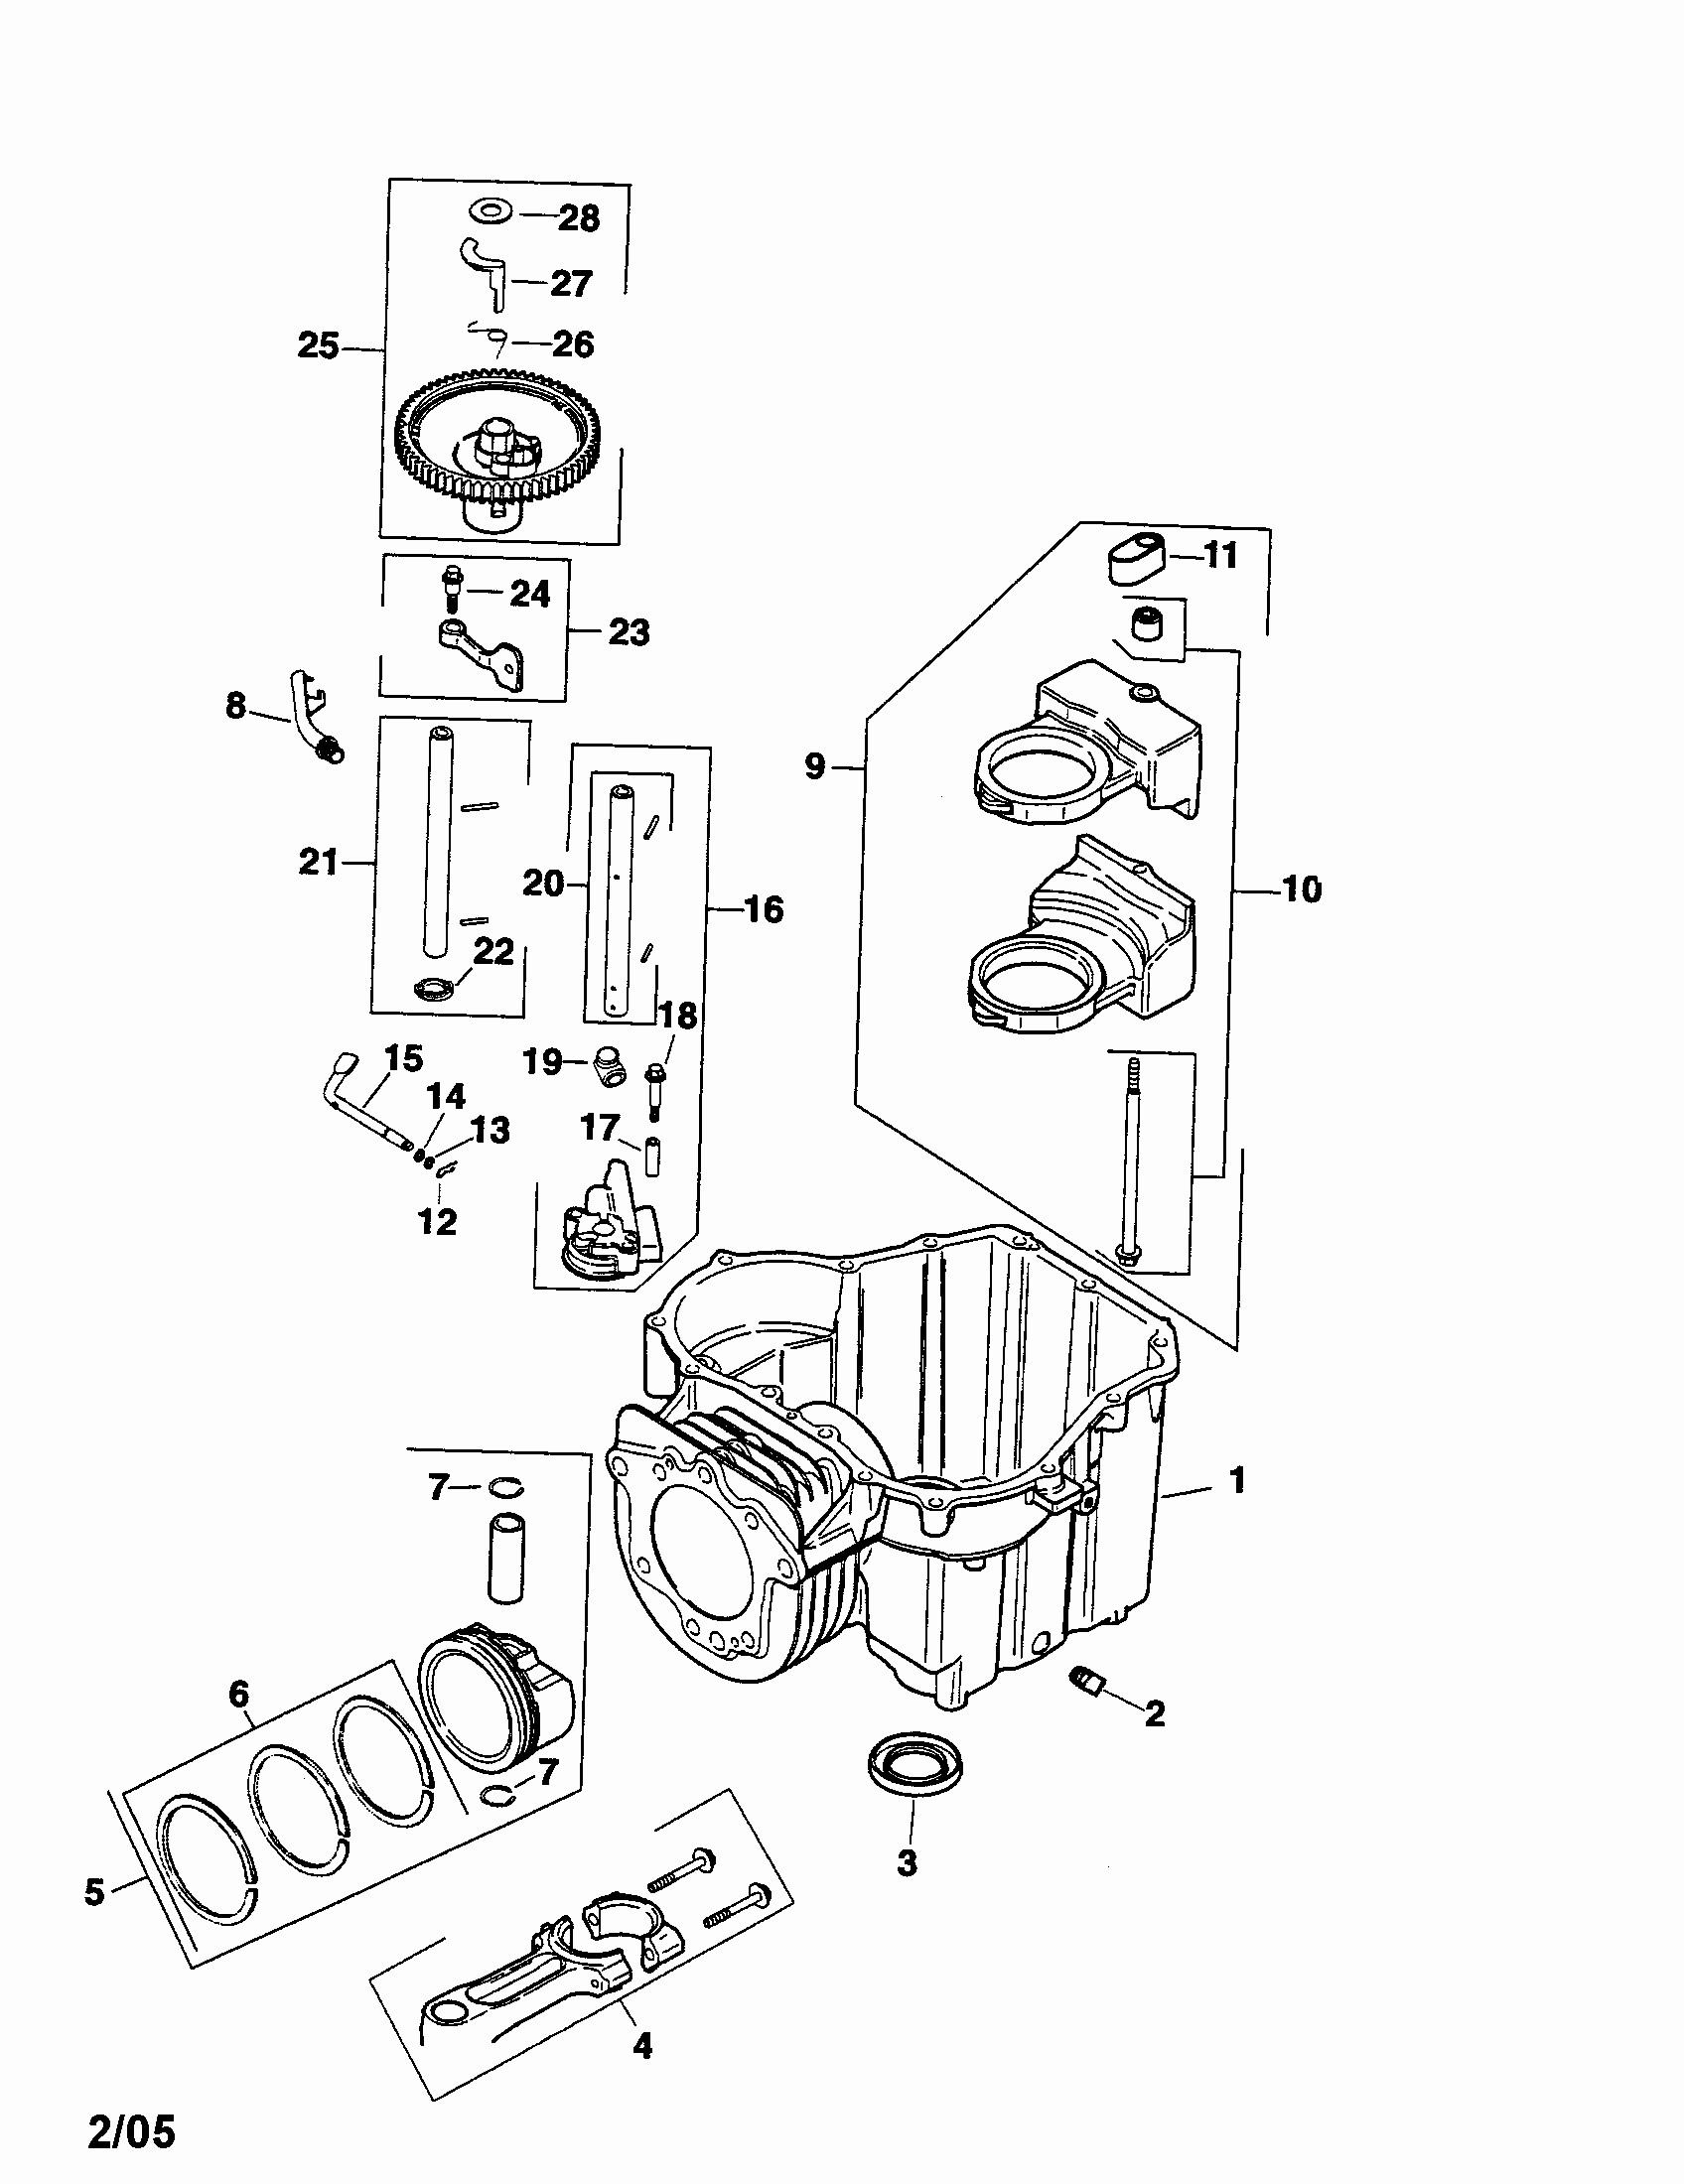 Kohler K241 Engine Parts Diagram Pontiac G6 2007 Fuse Box